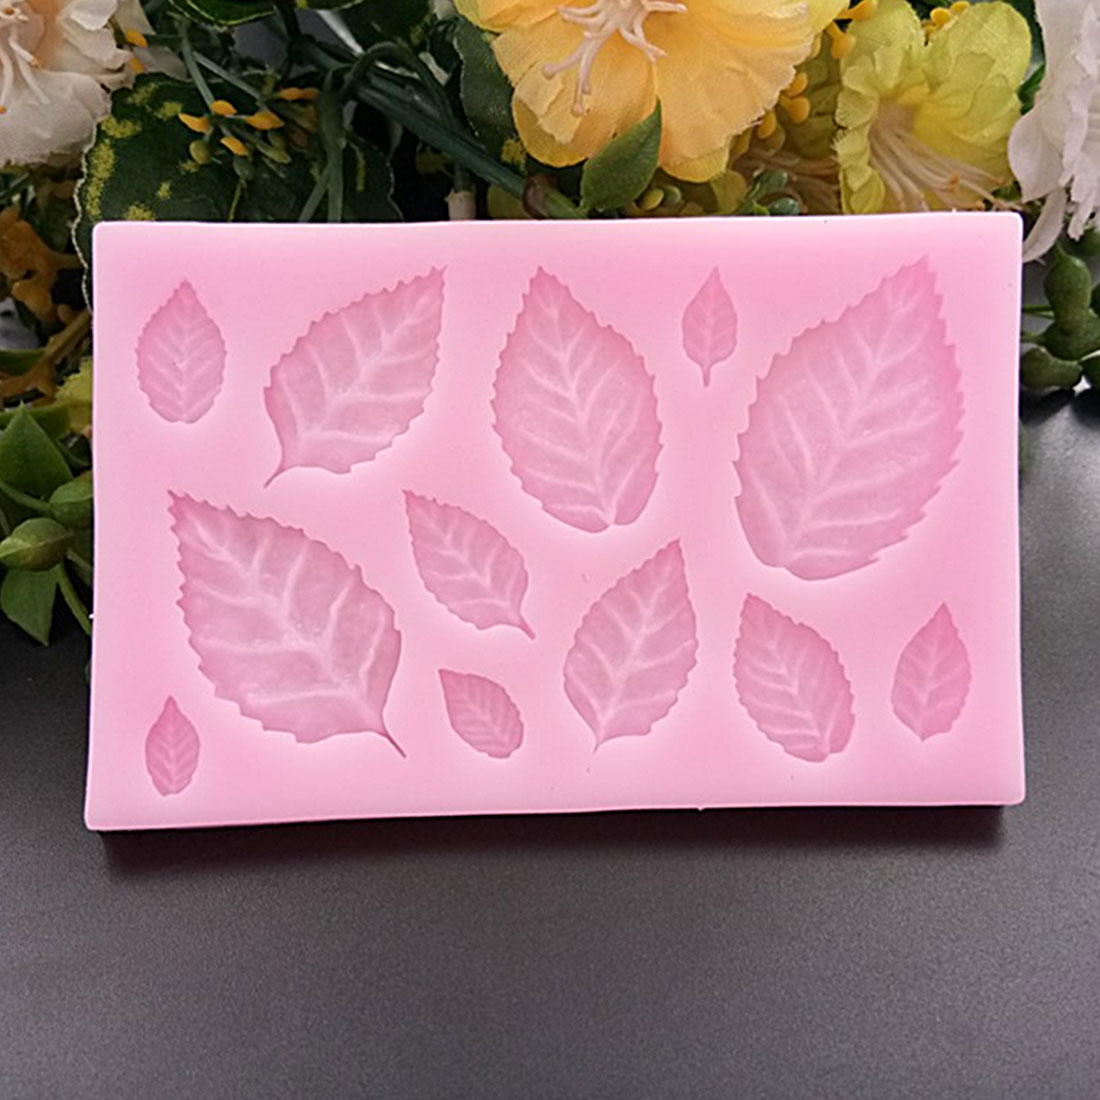 Hot Sale Leaf Shaped Silicone Press Mold Leaves Cake Decoration Fondant cookies tools 3D Silicone Mould Gumpaste Candy